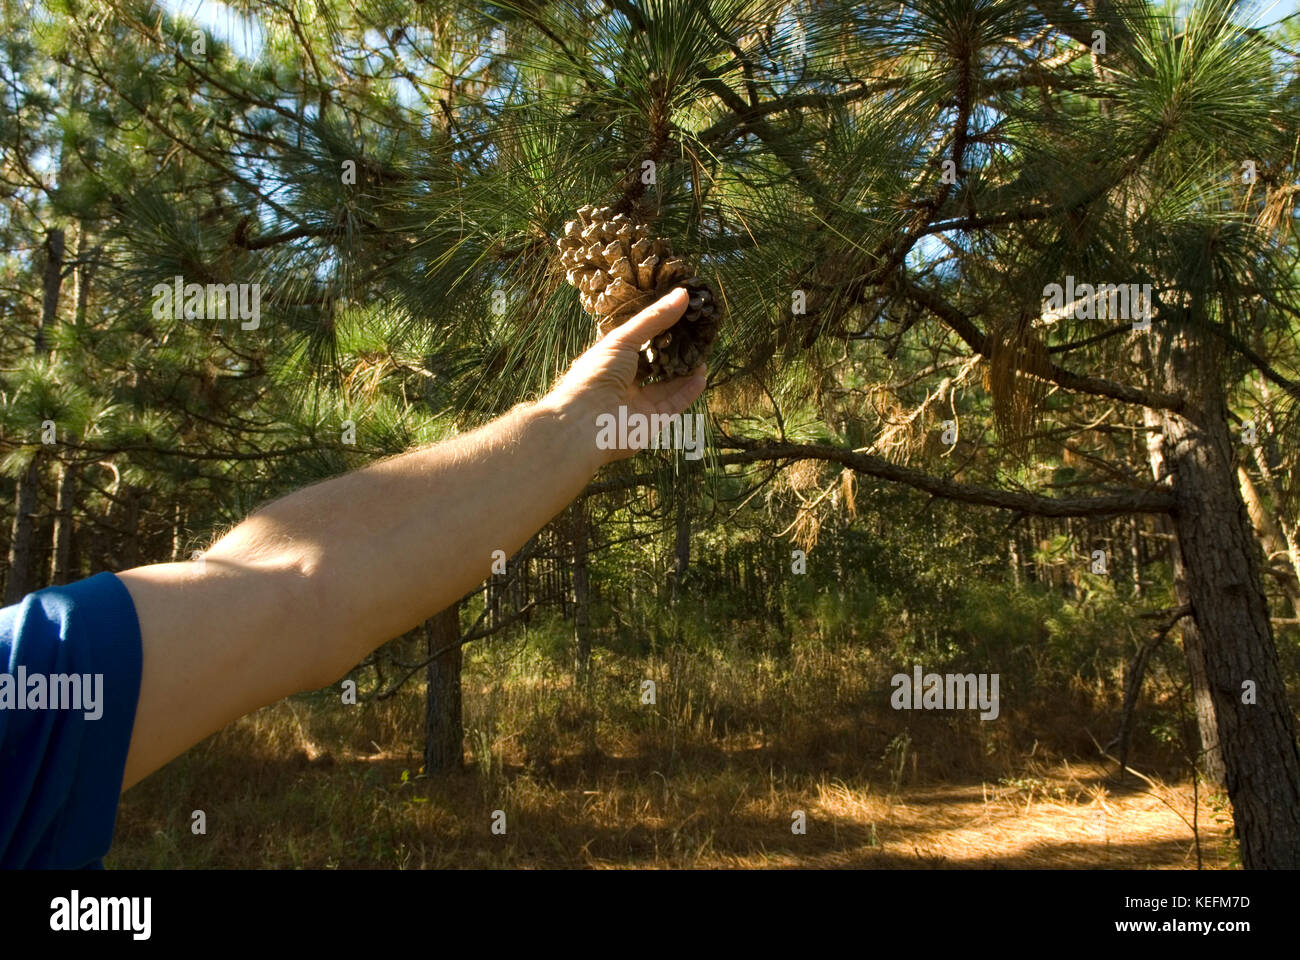 Caucasian man holding pine cone, Bethune, South Carolina, USA. Long leaf pine trees are used for mulch in landscaping. - Stock Image